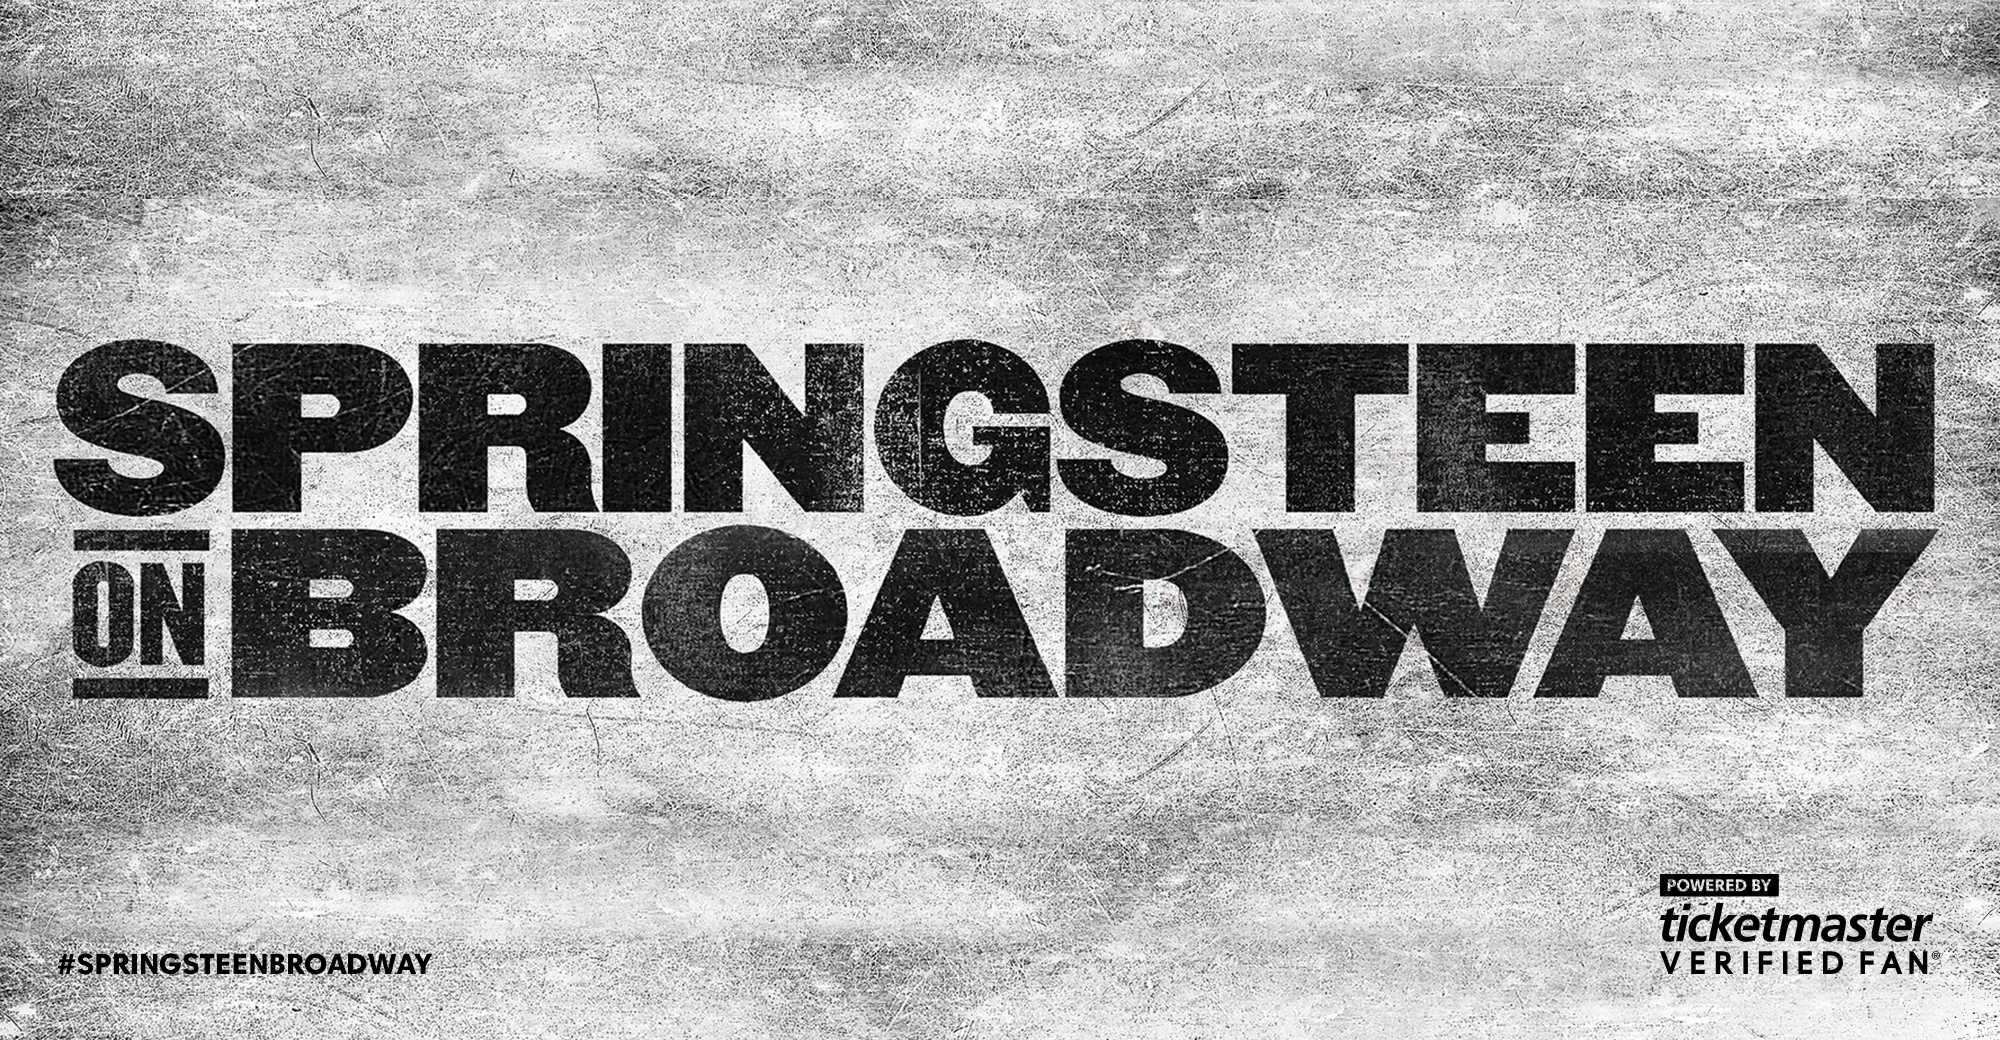 Bruce Springsteen Opens Broadway Run With Tom Petty Dedication